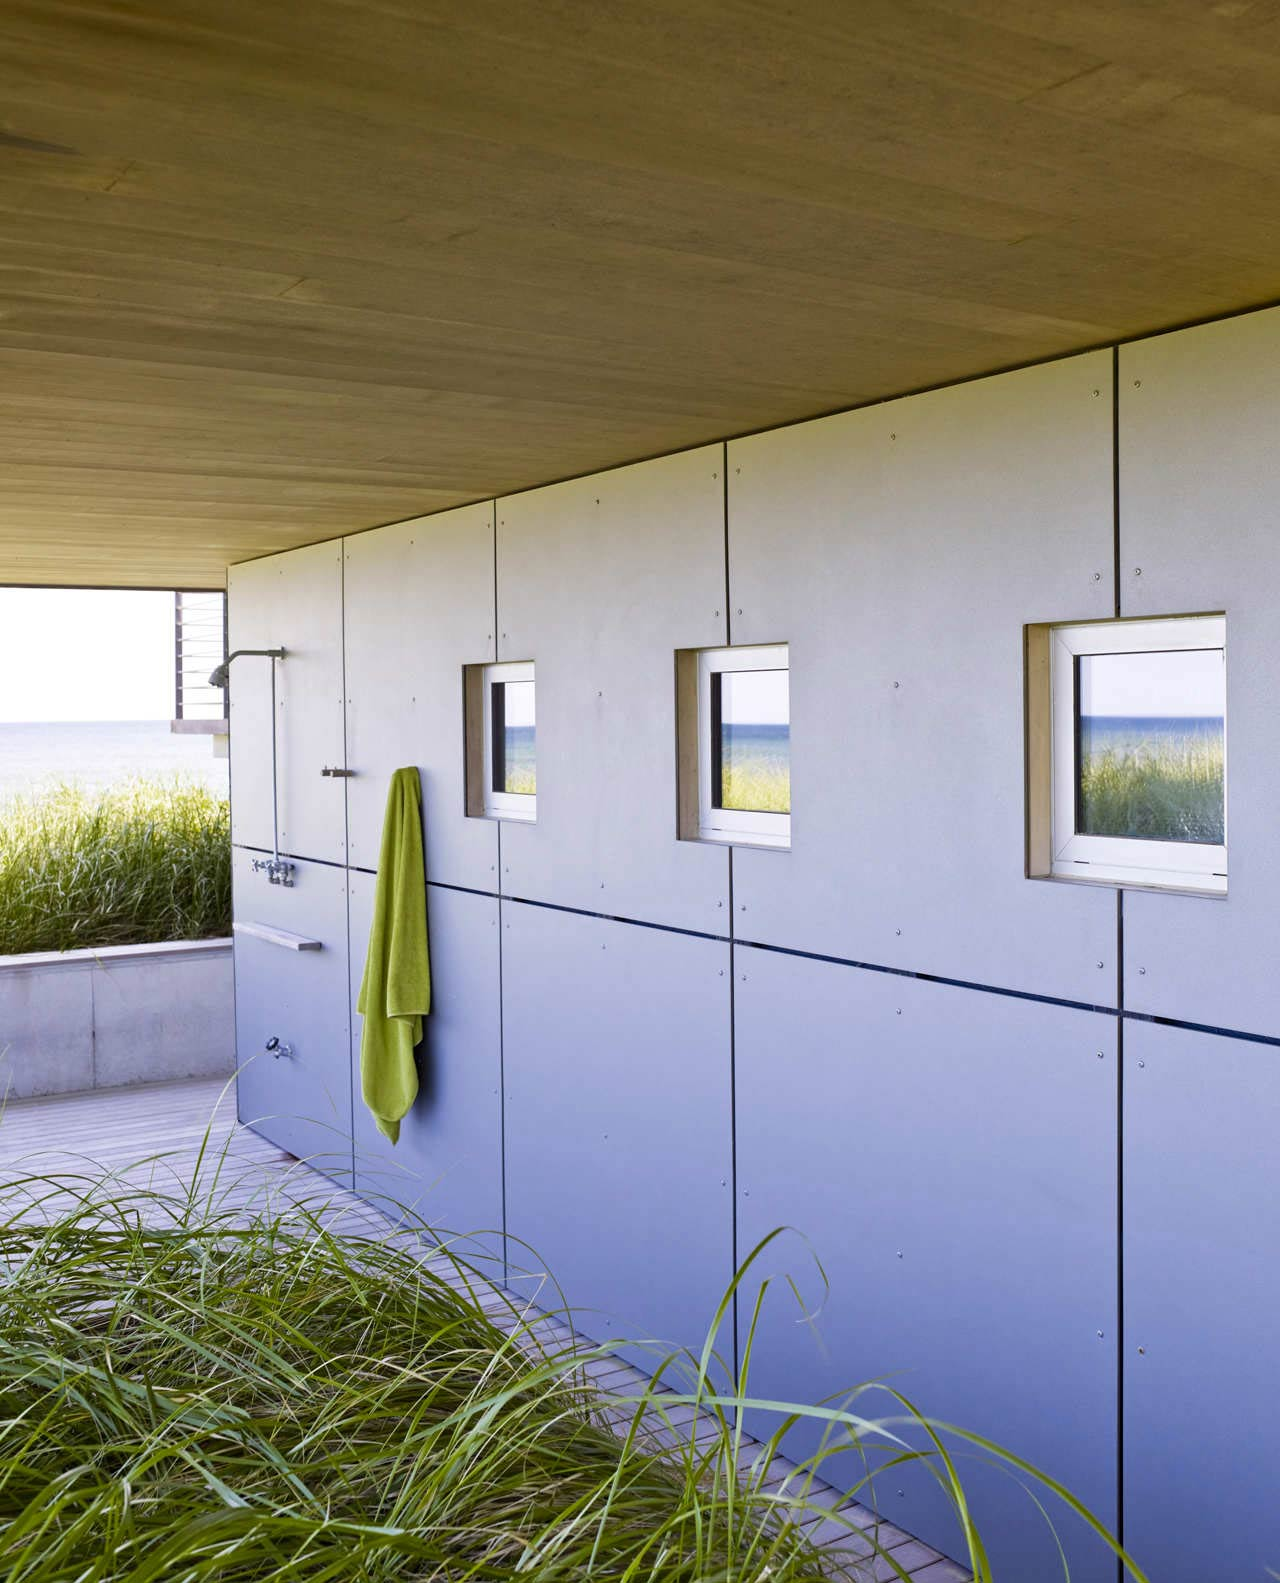 Outdoor Shower, Surfside House in Bridgehampton, New York by Stelle Architects